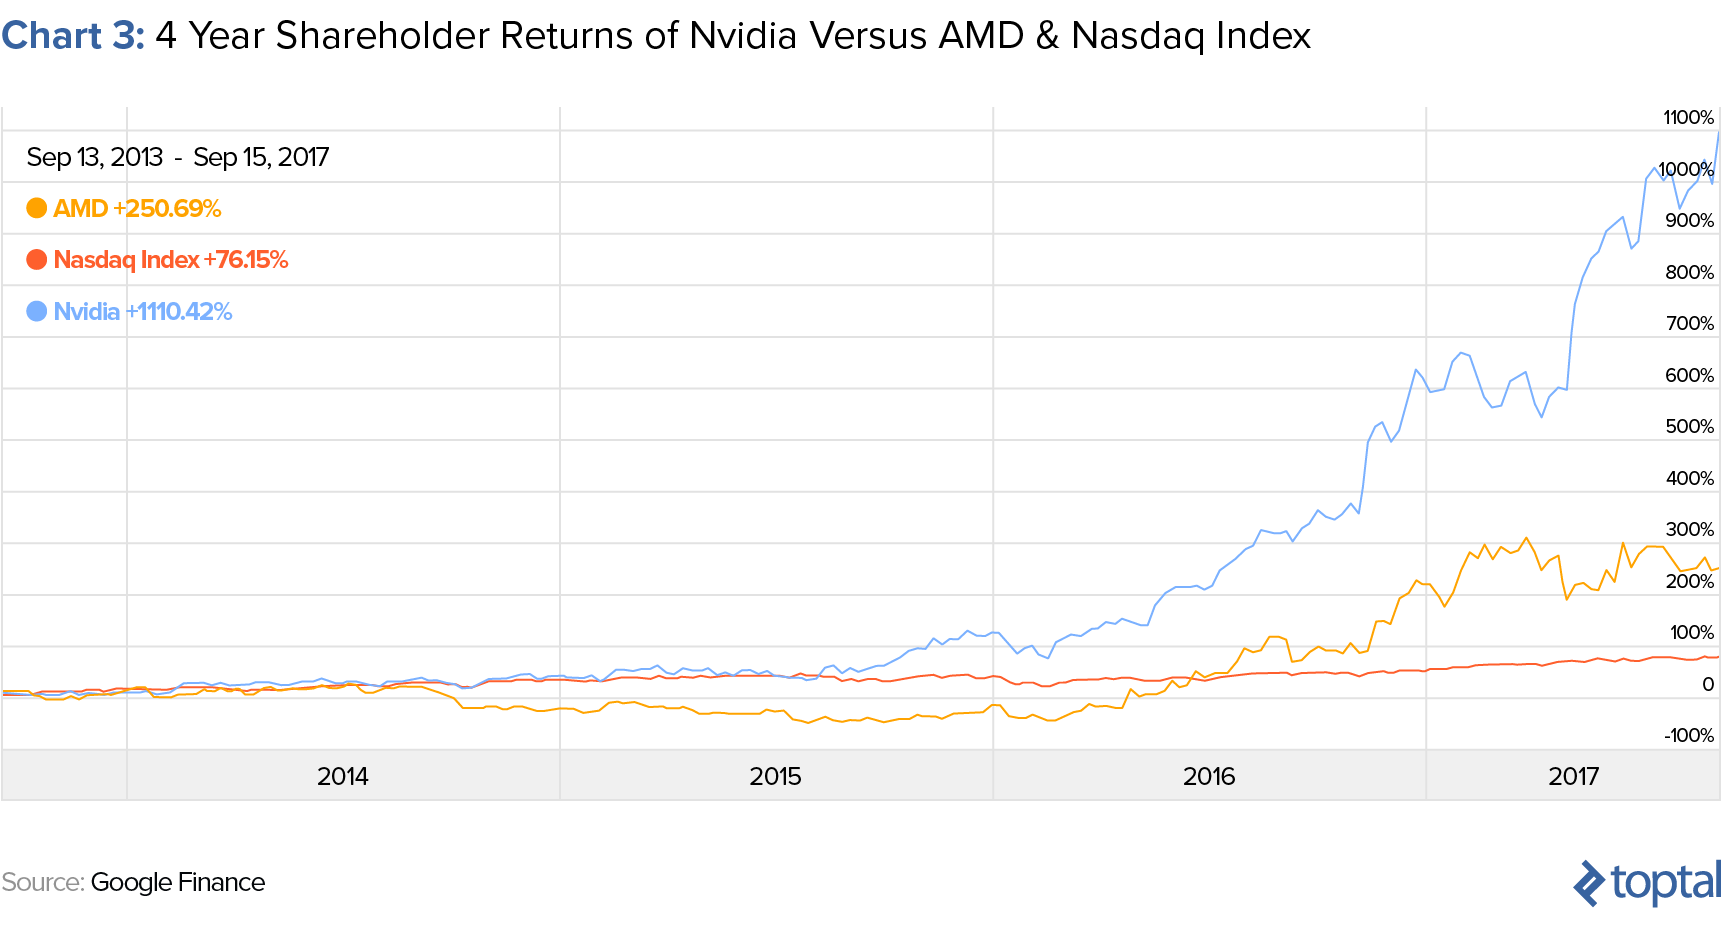 Chart 3: 4 Year Shareholder Returns of Nvidia versus AMD & NASDAQ Index